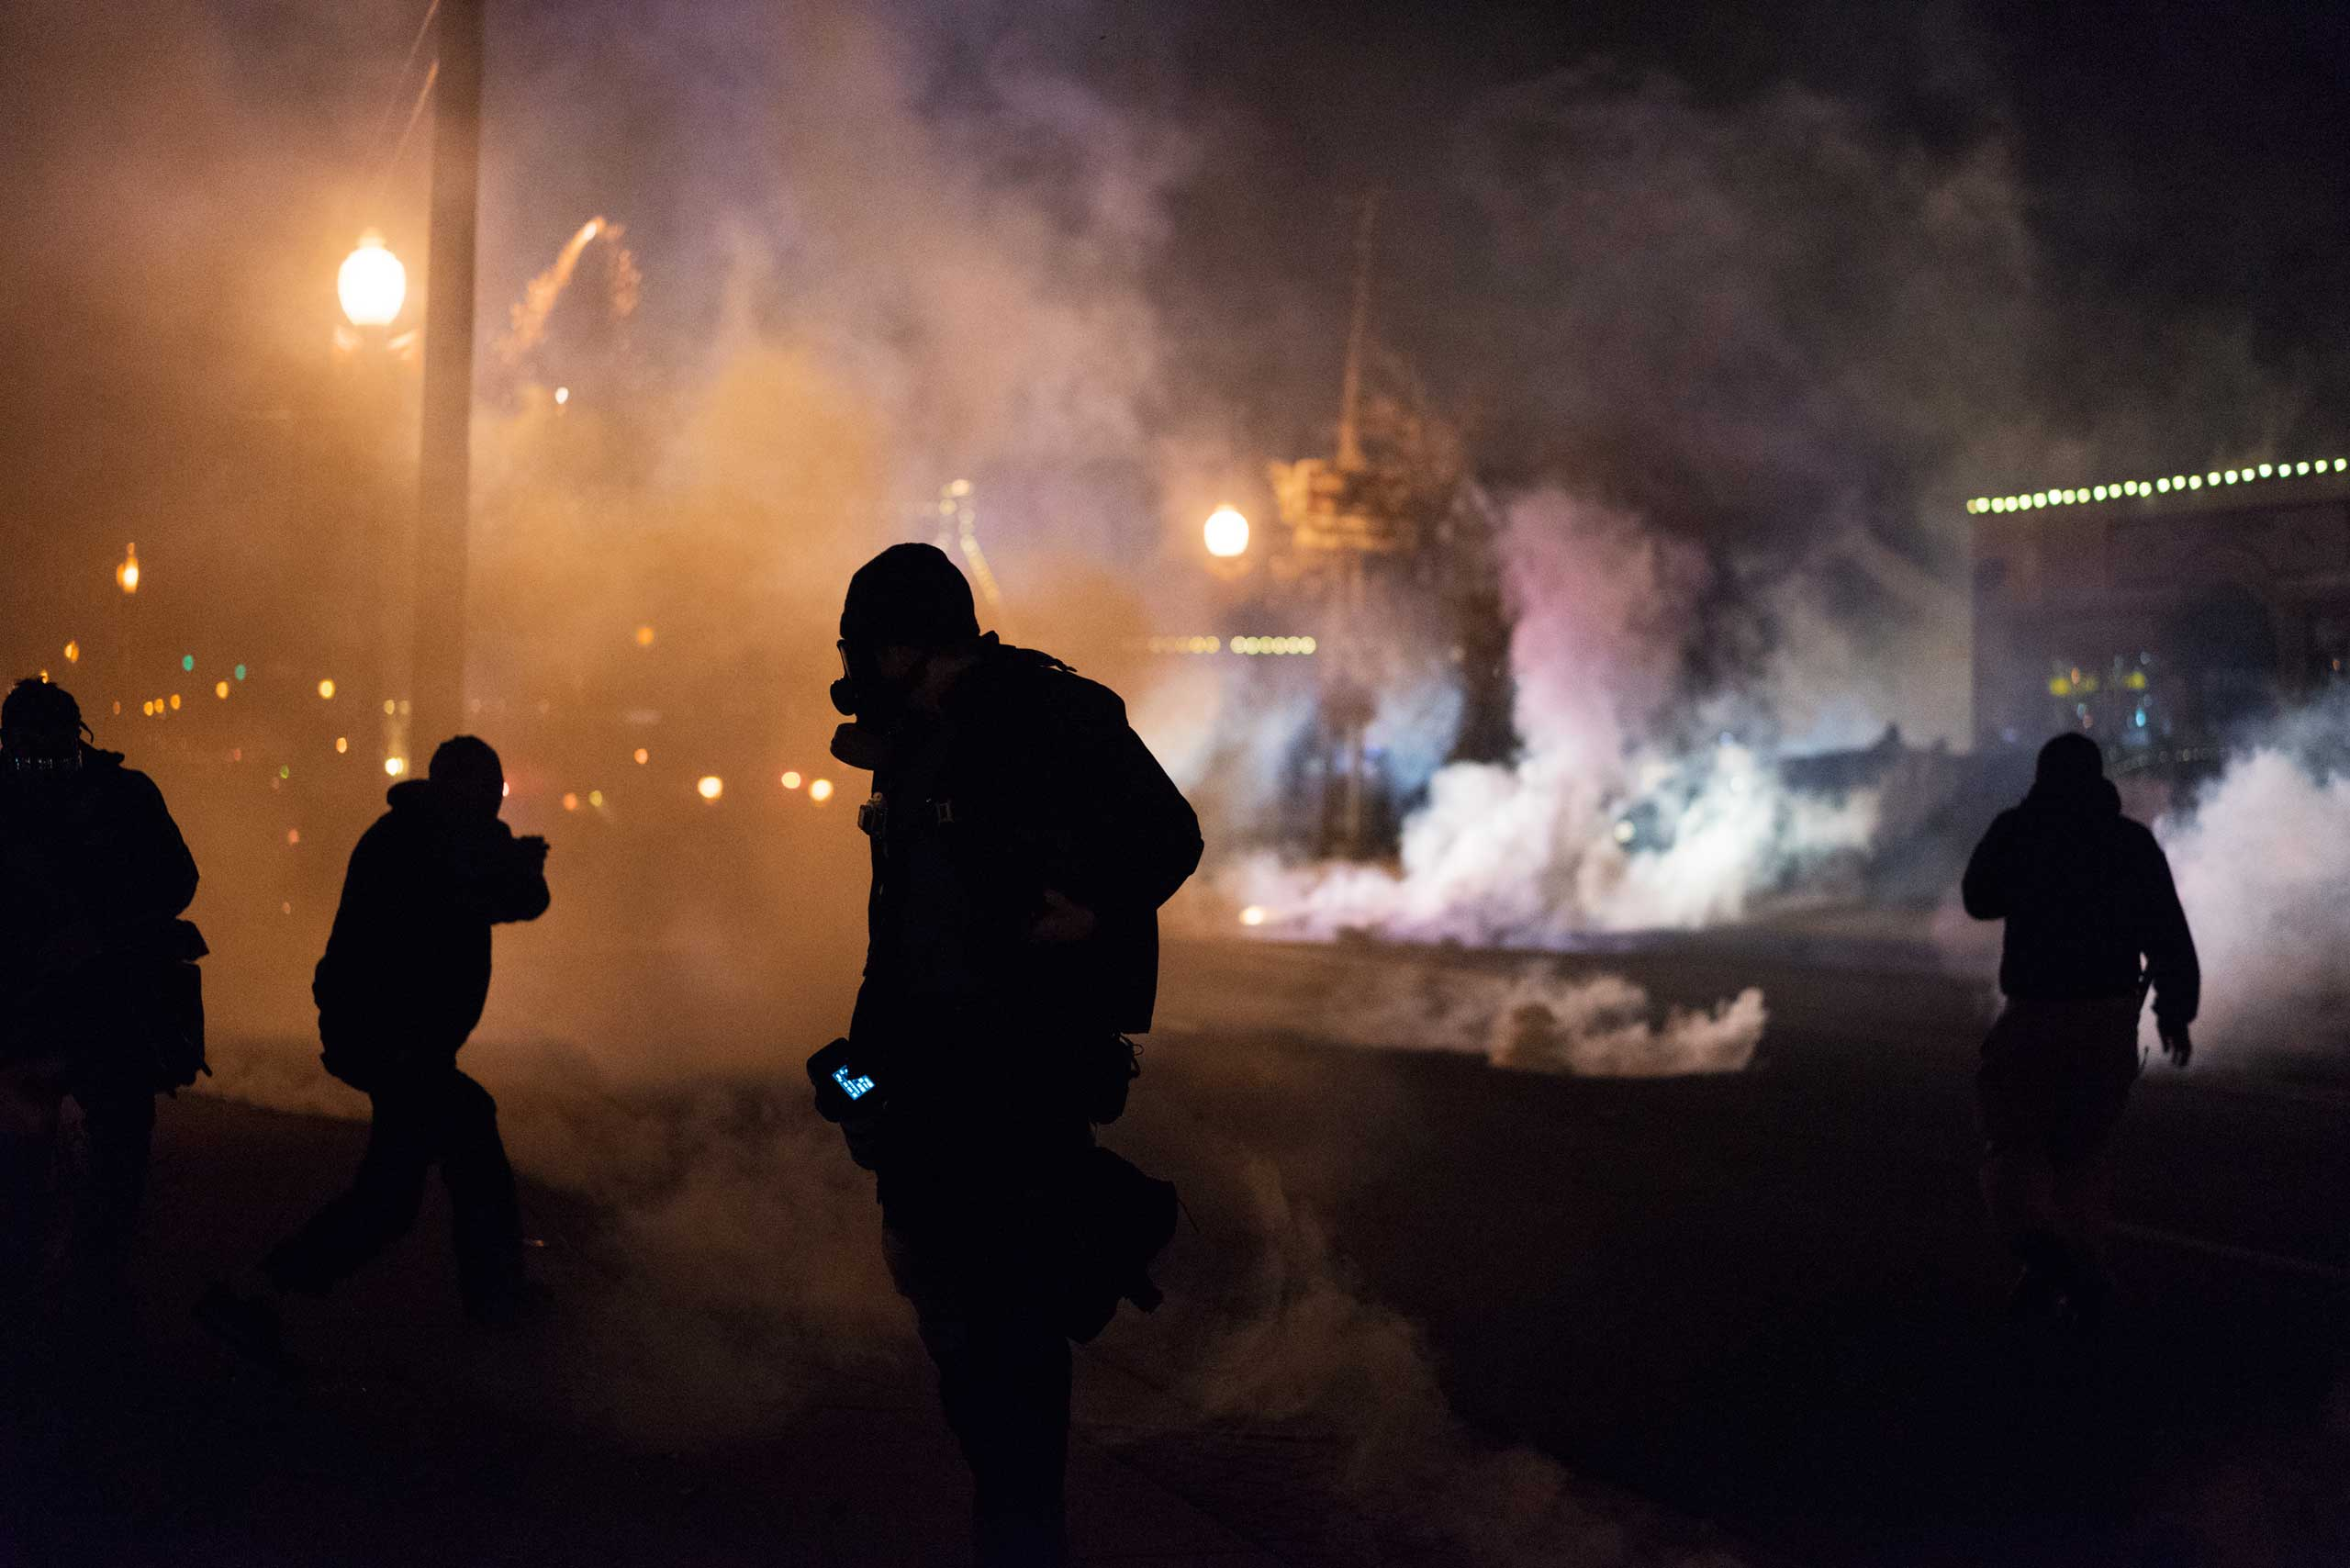 Protesters stand amid tear gas and smoke in Ferguson, Mo. on Nov. 24, 2014.